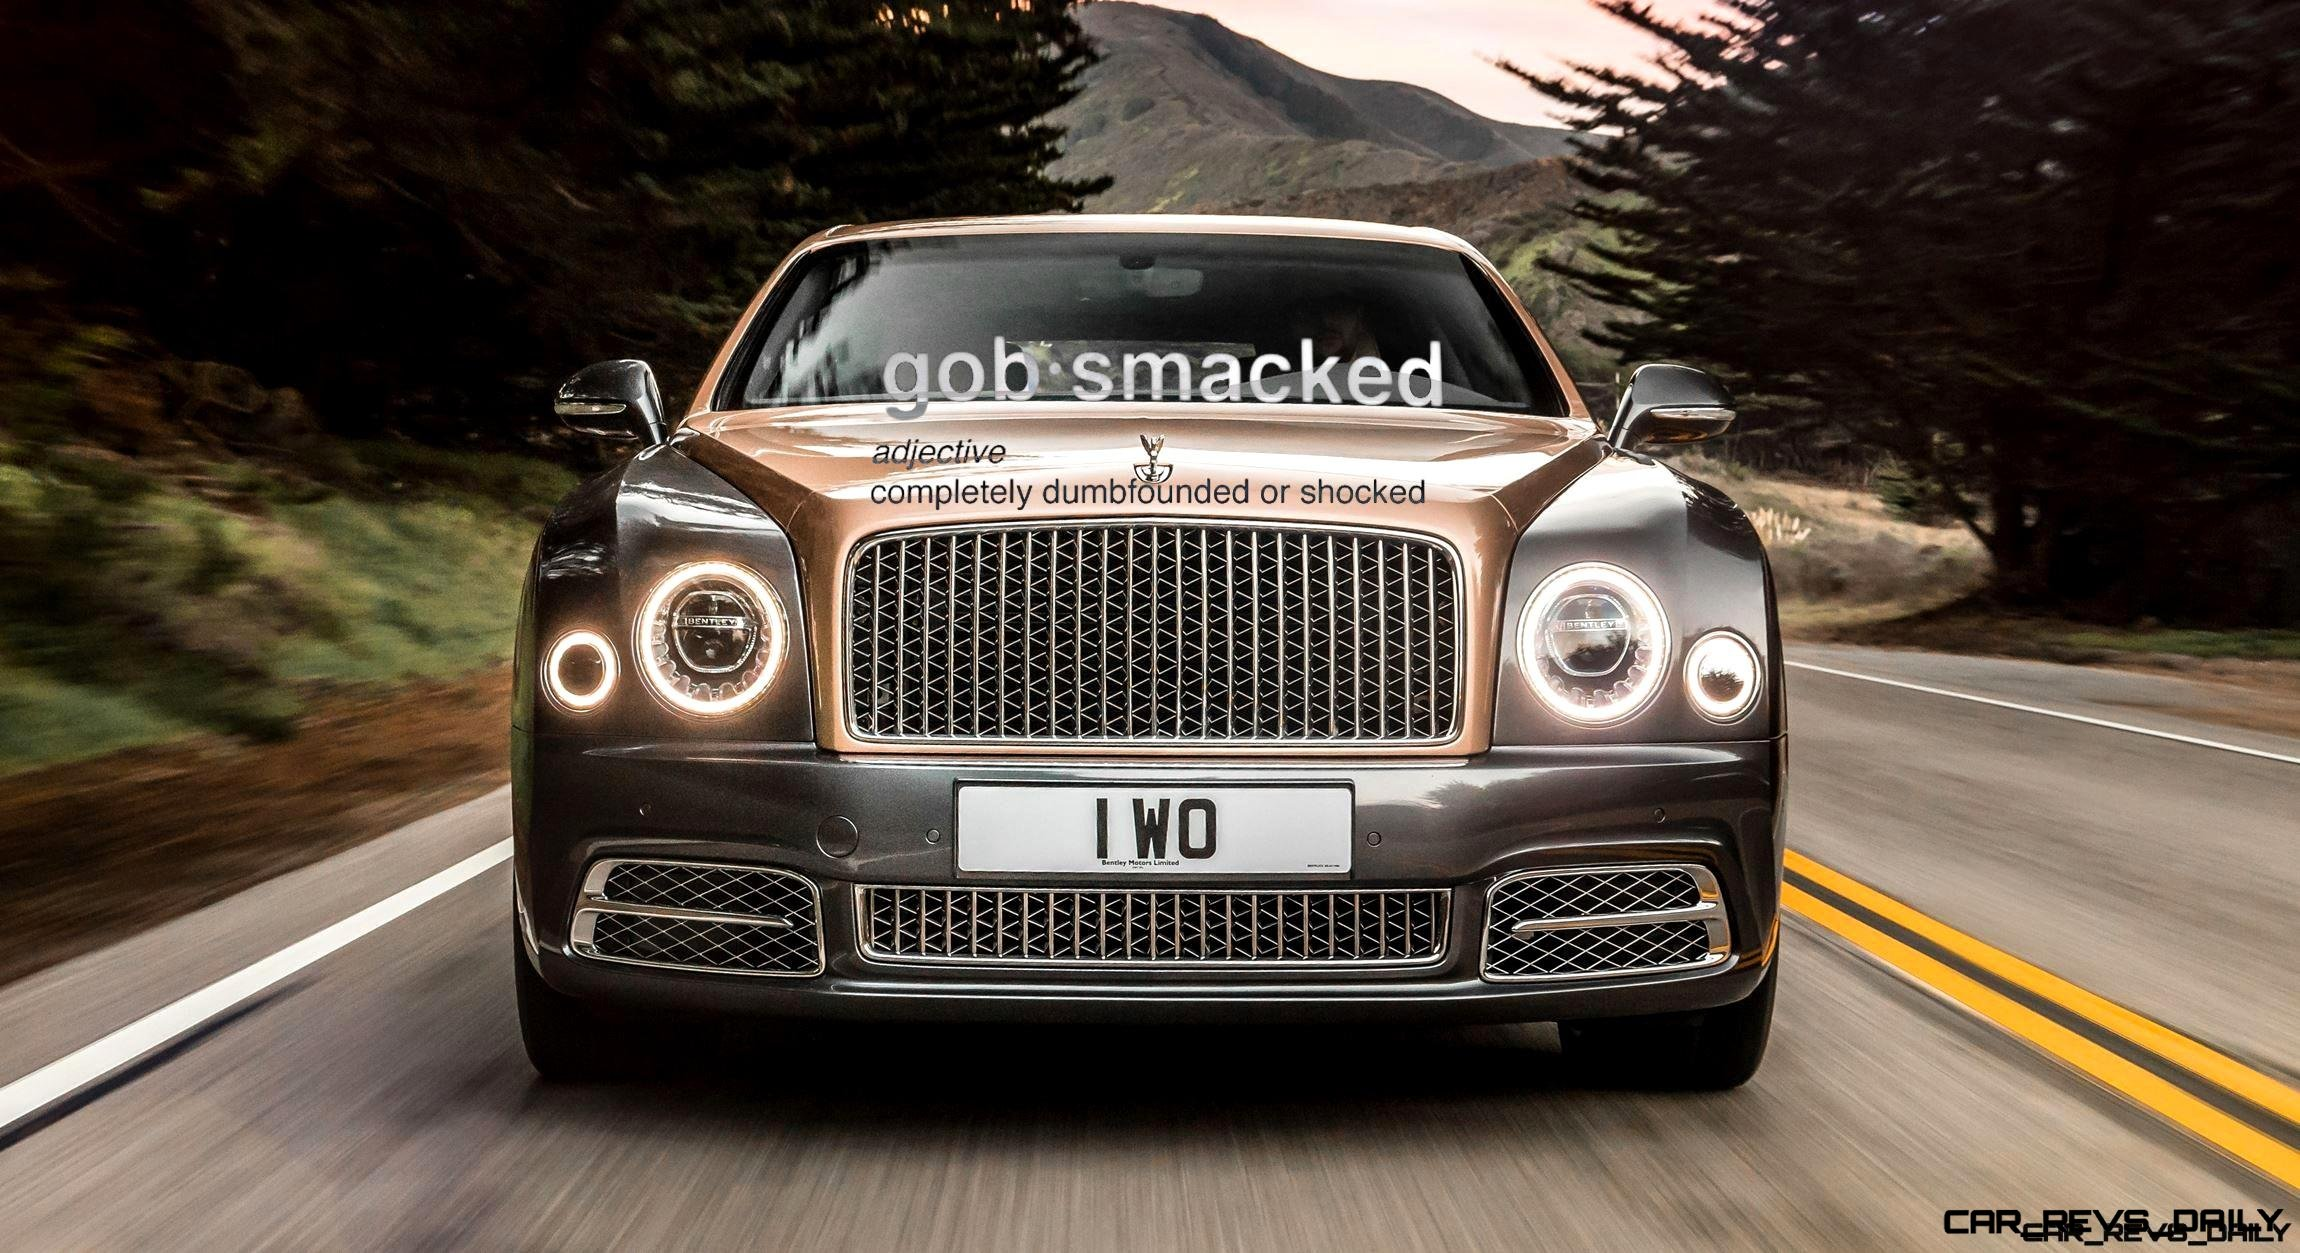 2017 Bentley MULSANNE Revealed - Refreshed Styling + Tech